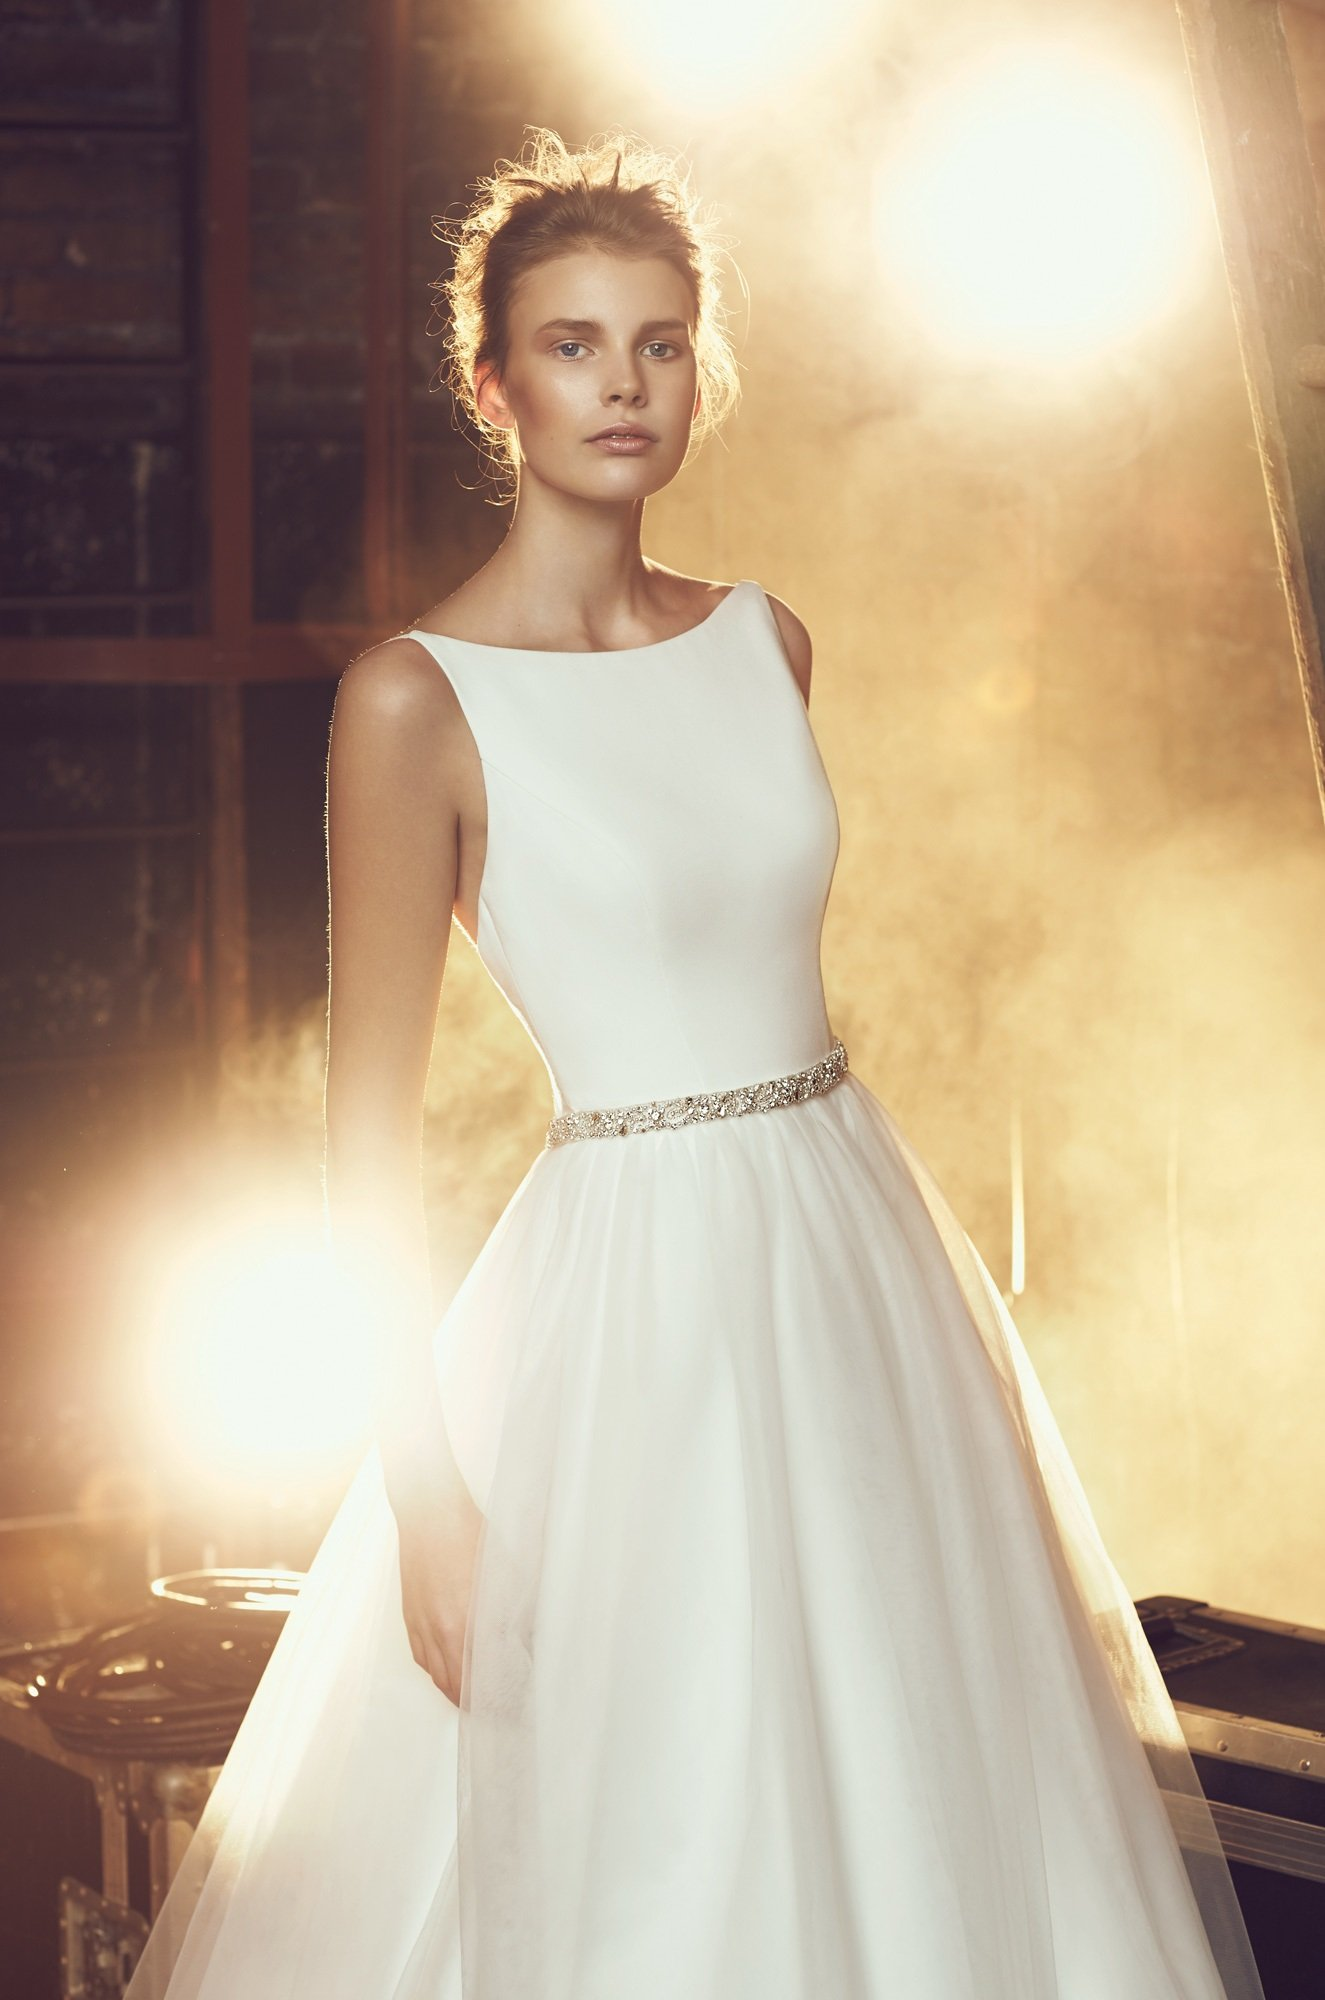 Bridal Gowns For   : Tulle skirt wedding dress style mikaella bridal